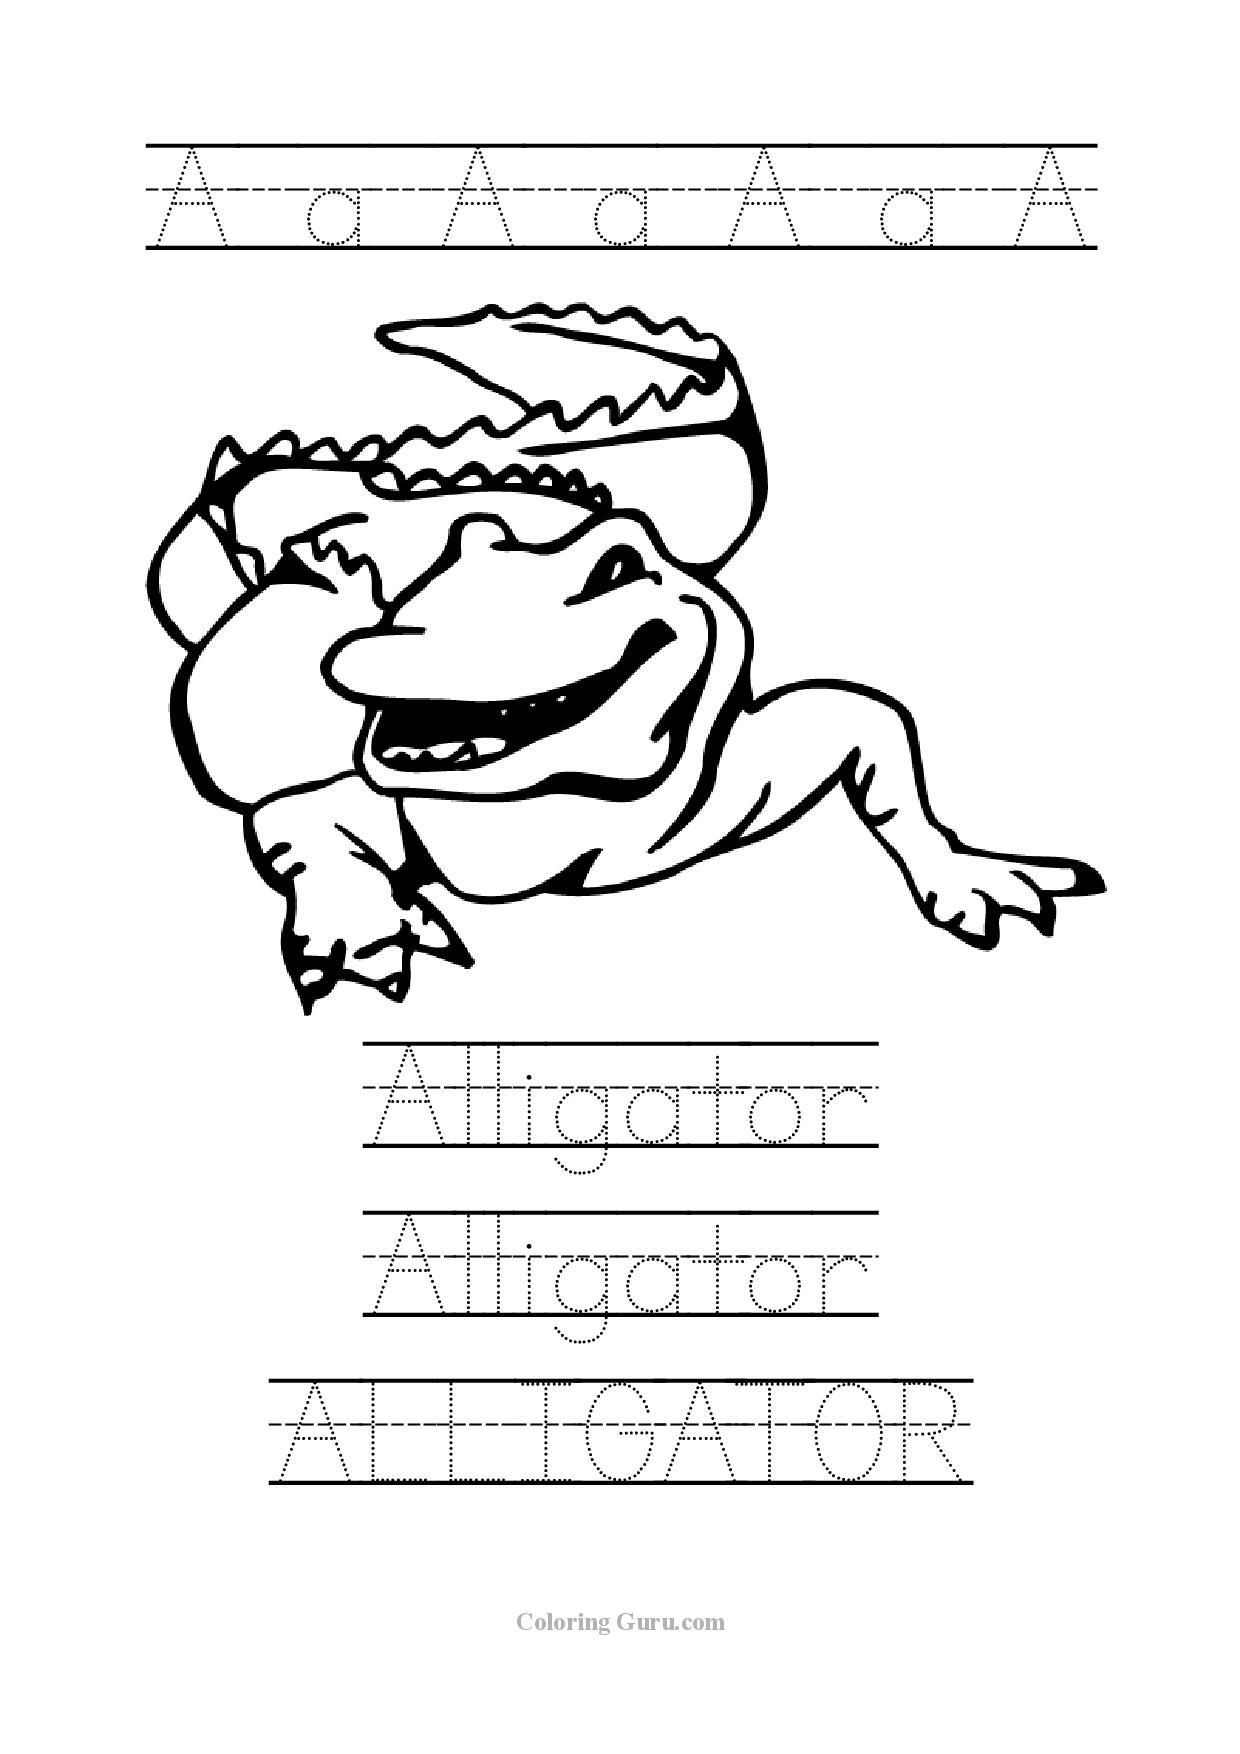 Tracing Word Alligator Worksheets For Preschool